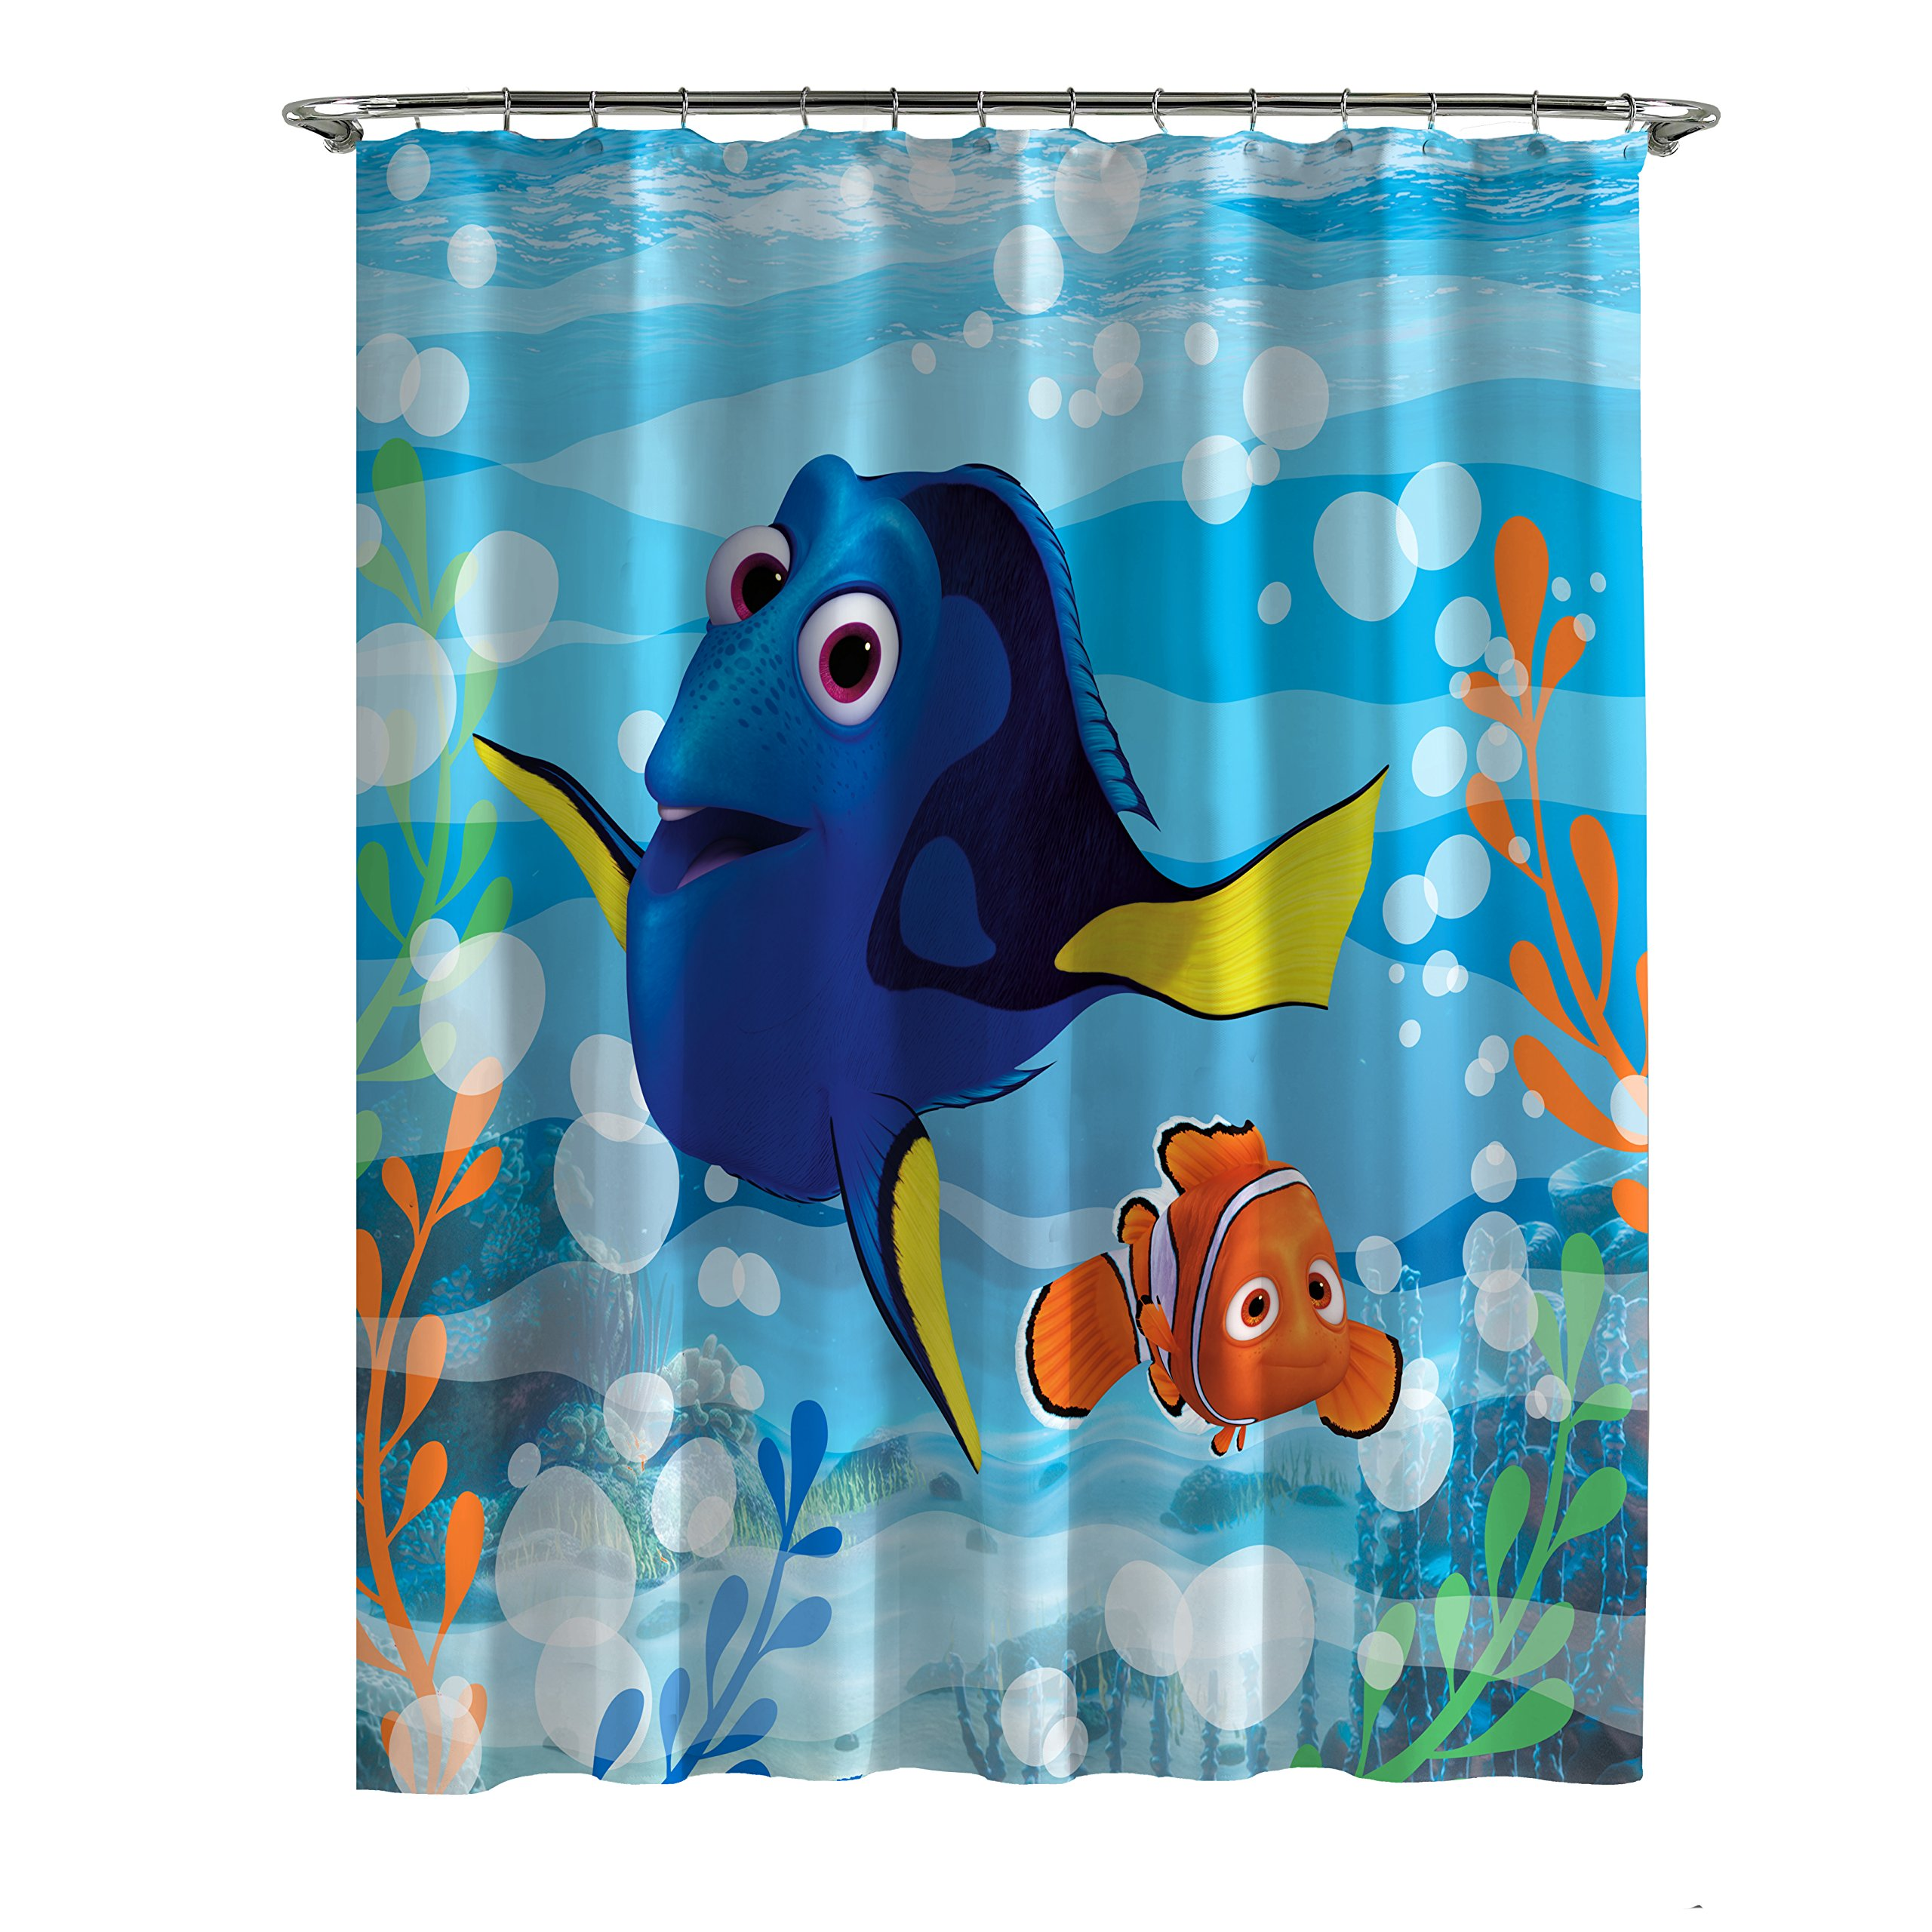 Cheap Finding Nemo Shower Curtain, find Finding Nemo Shower Curtain ...